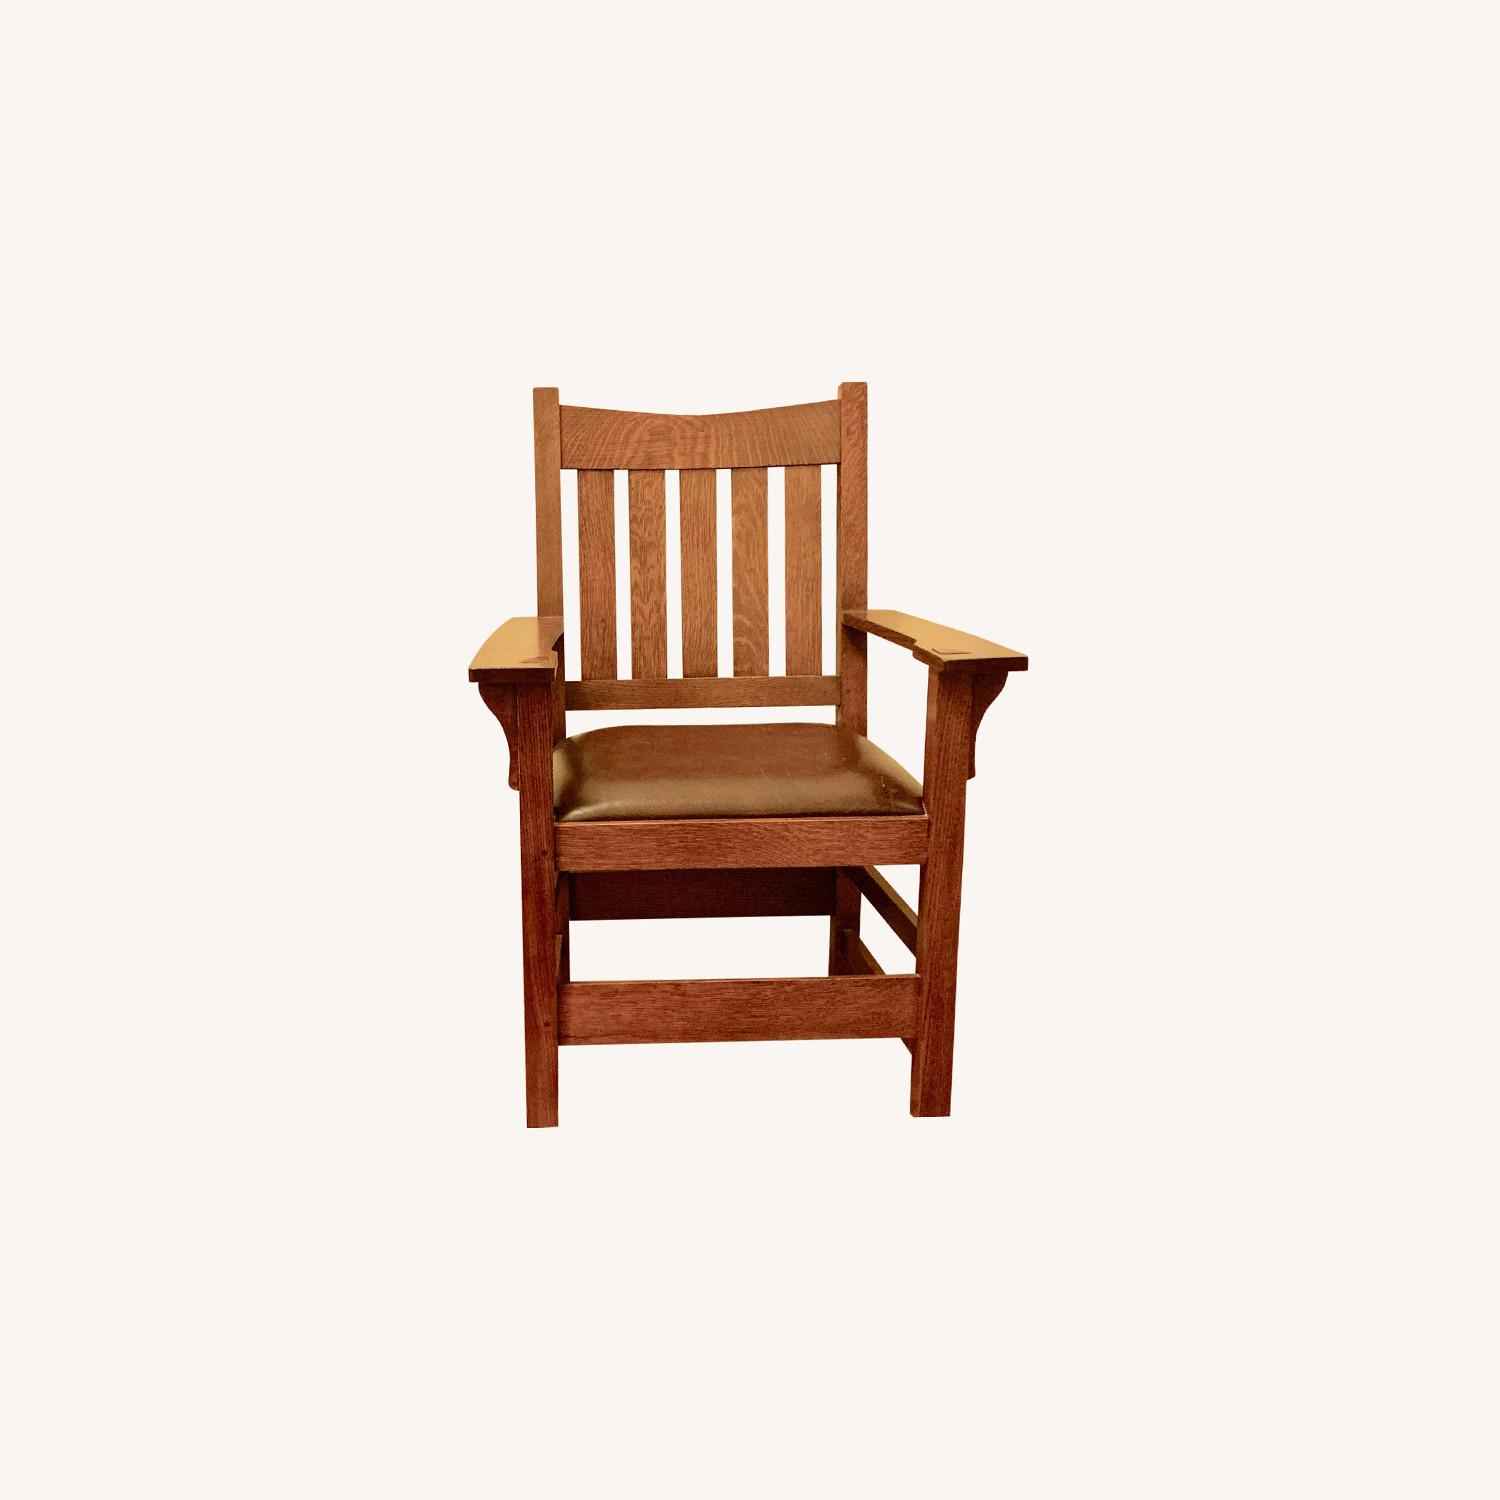 Stickley Mission Oak Chair with Leather Seat - image-0